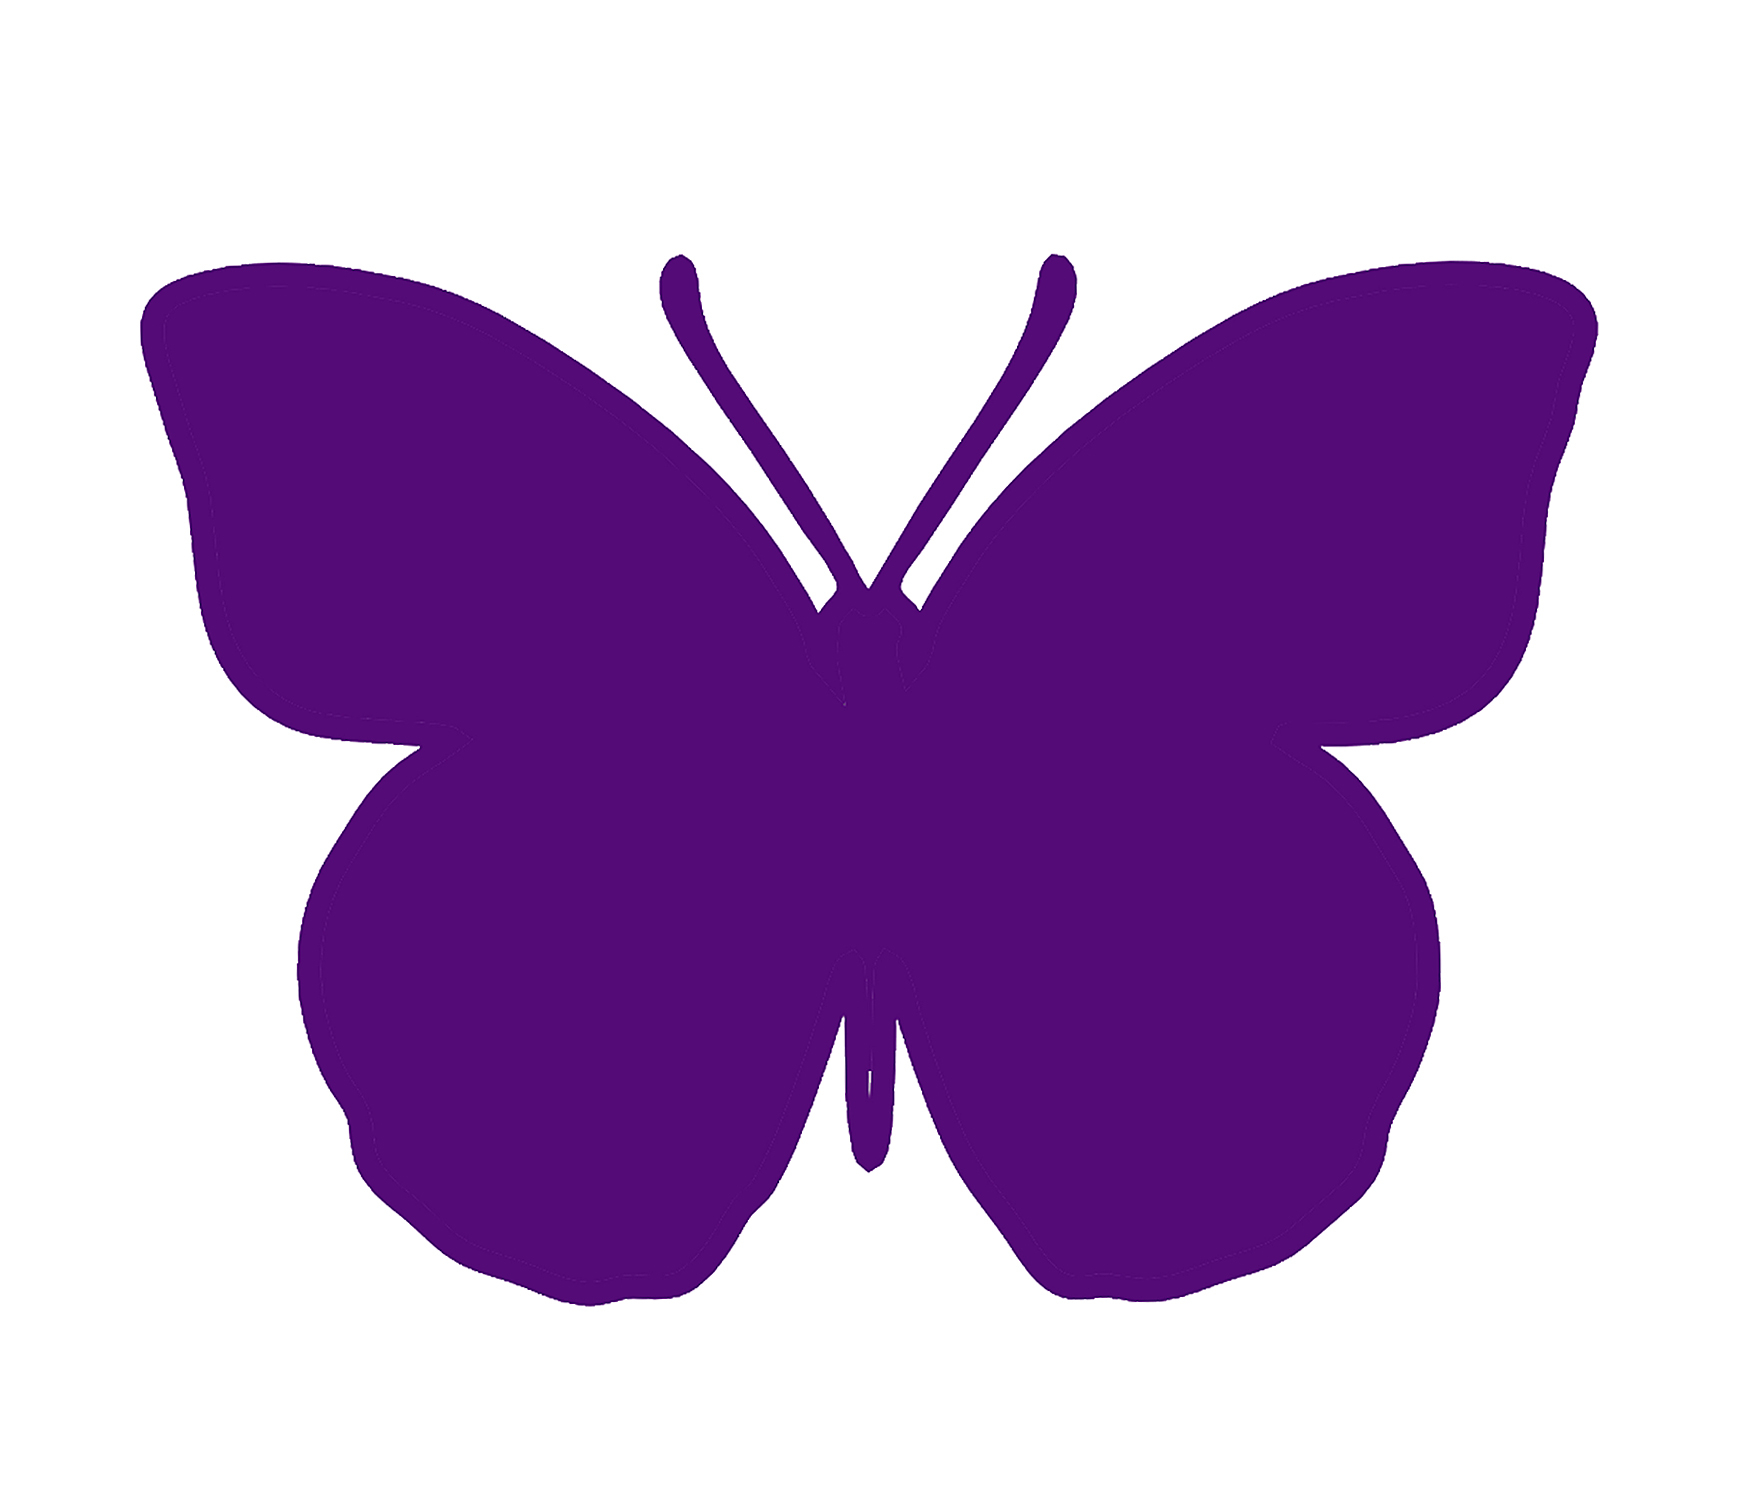 What Purple Butterfly Stickers at the Hospital Mean